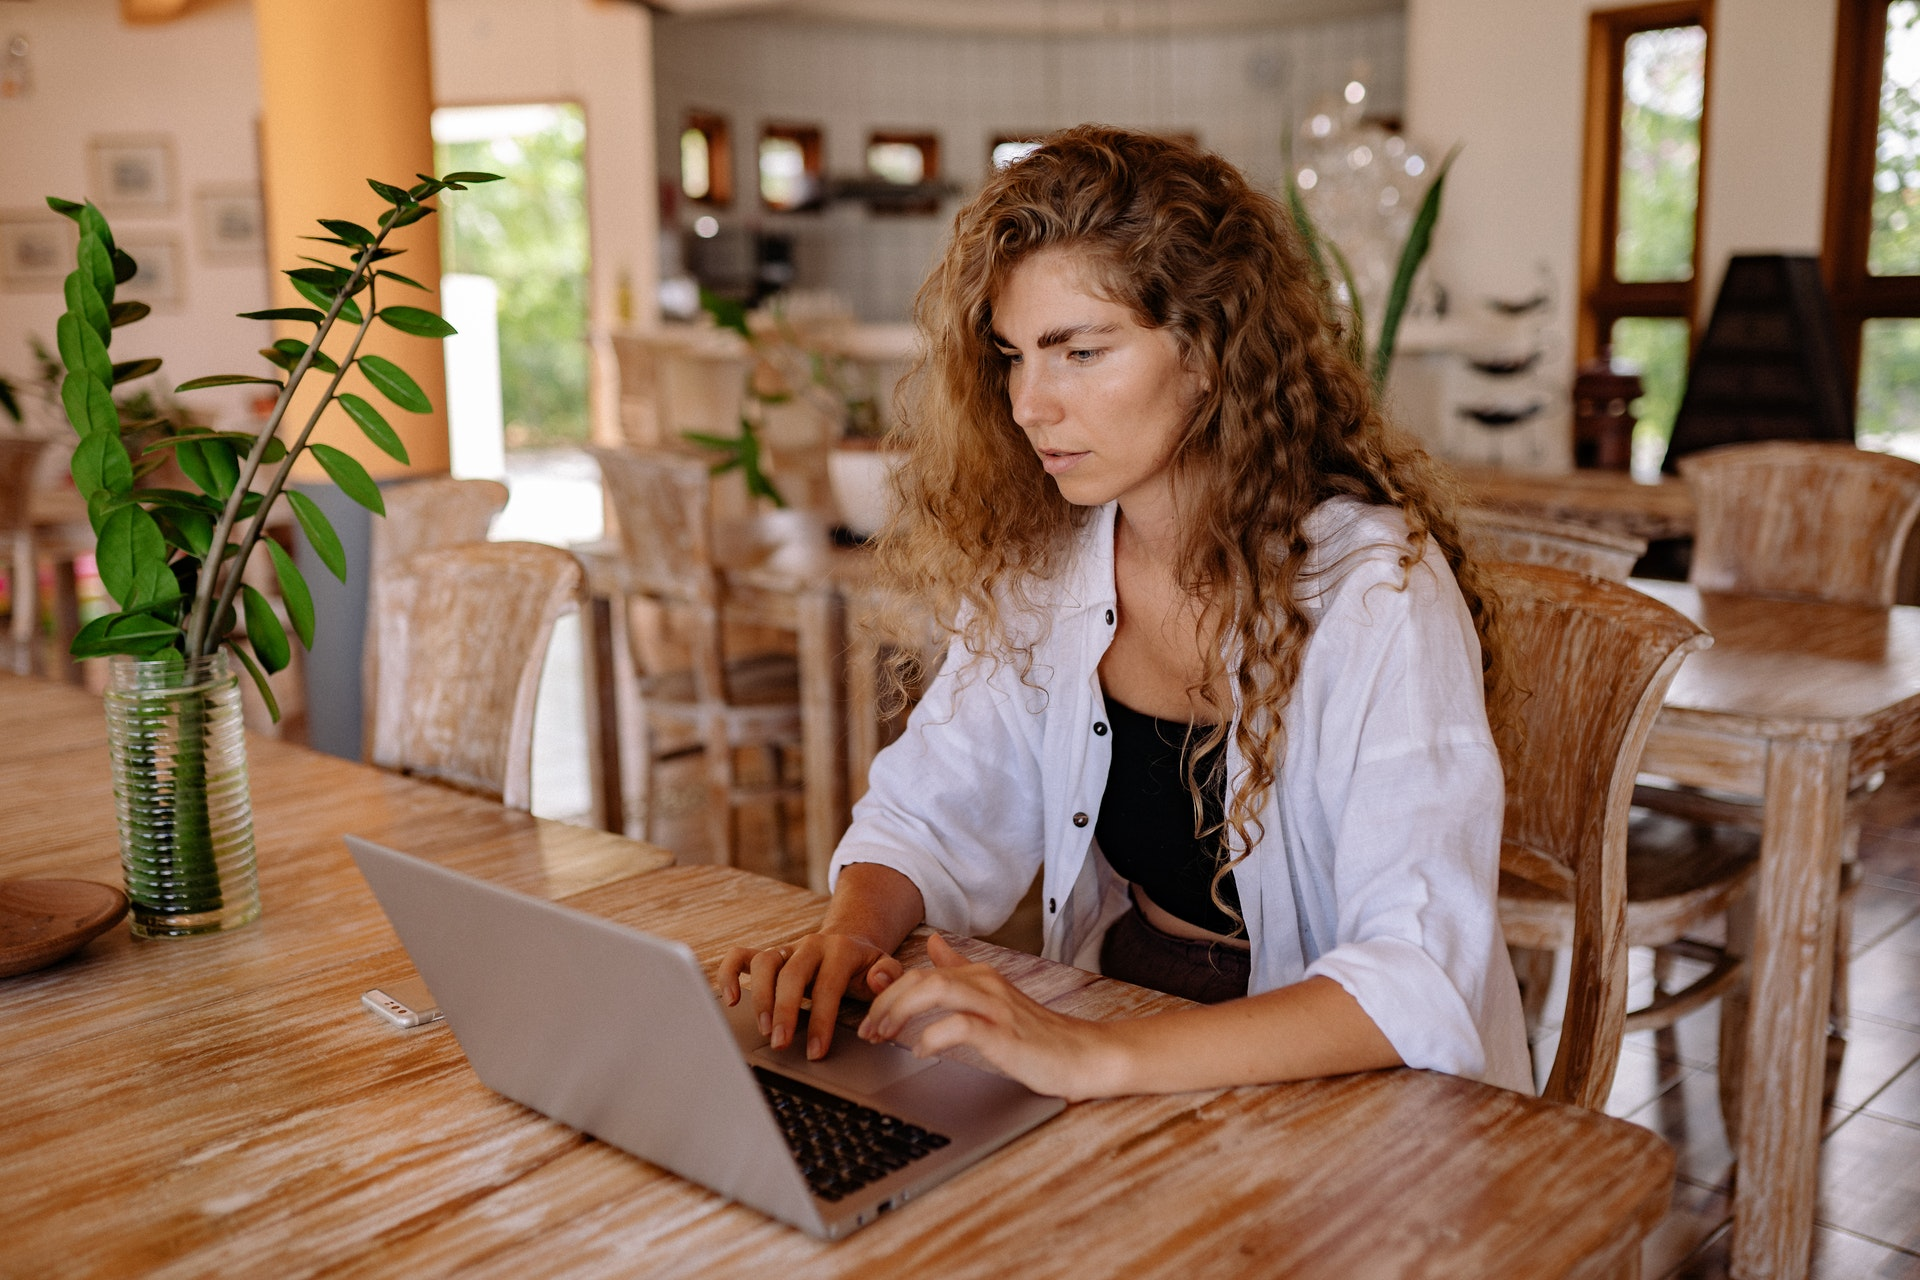 How to stay working while working from home woman on desk with laptop